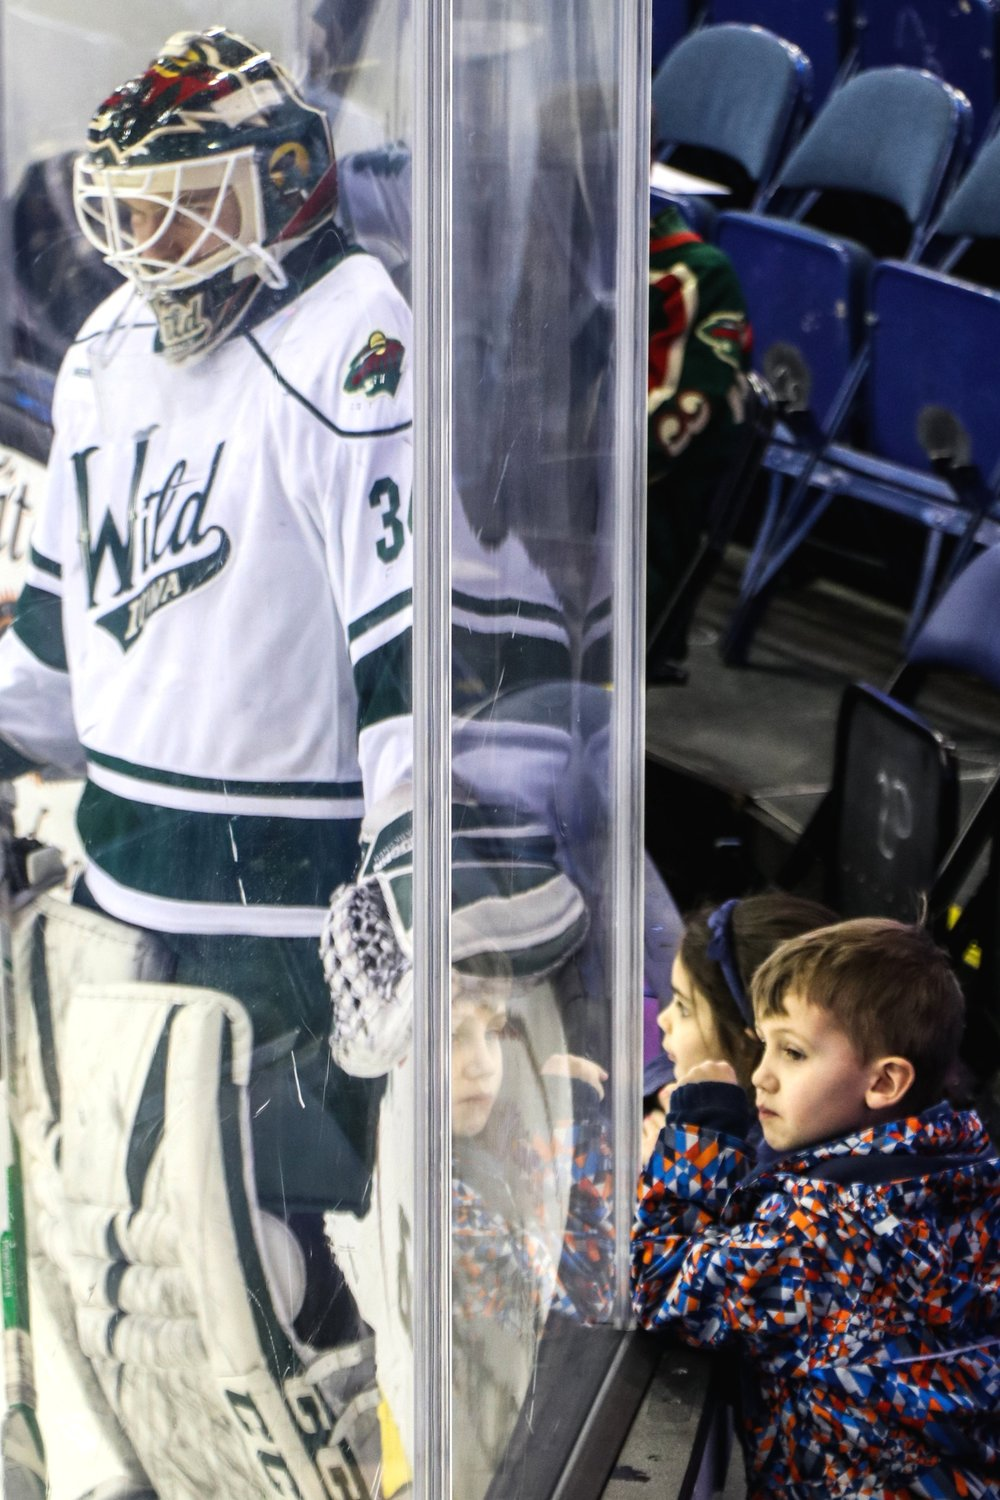 Iowa Wild goalie C.J. Motte and two young fans watch the rink during warmups.